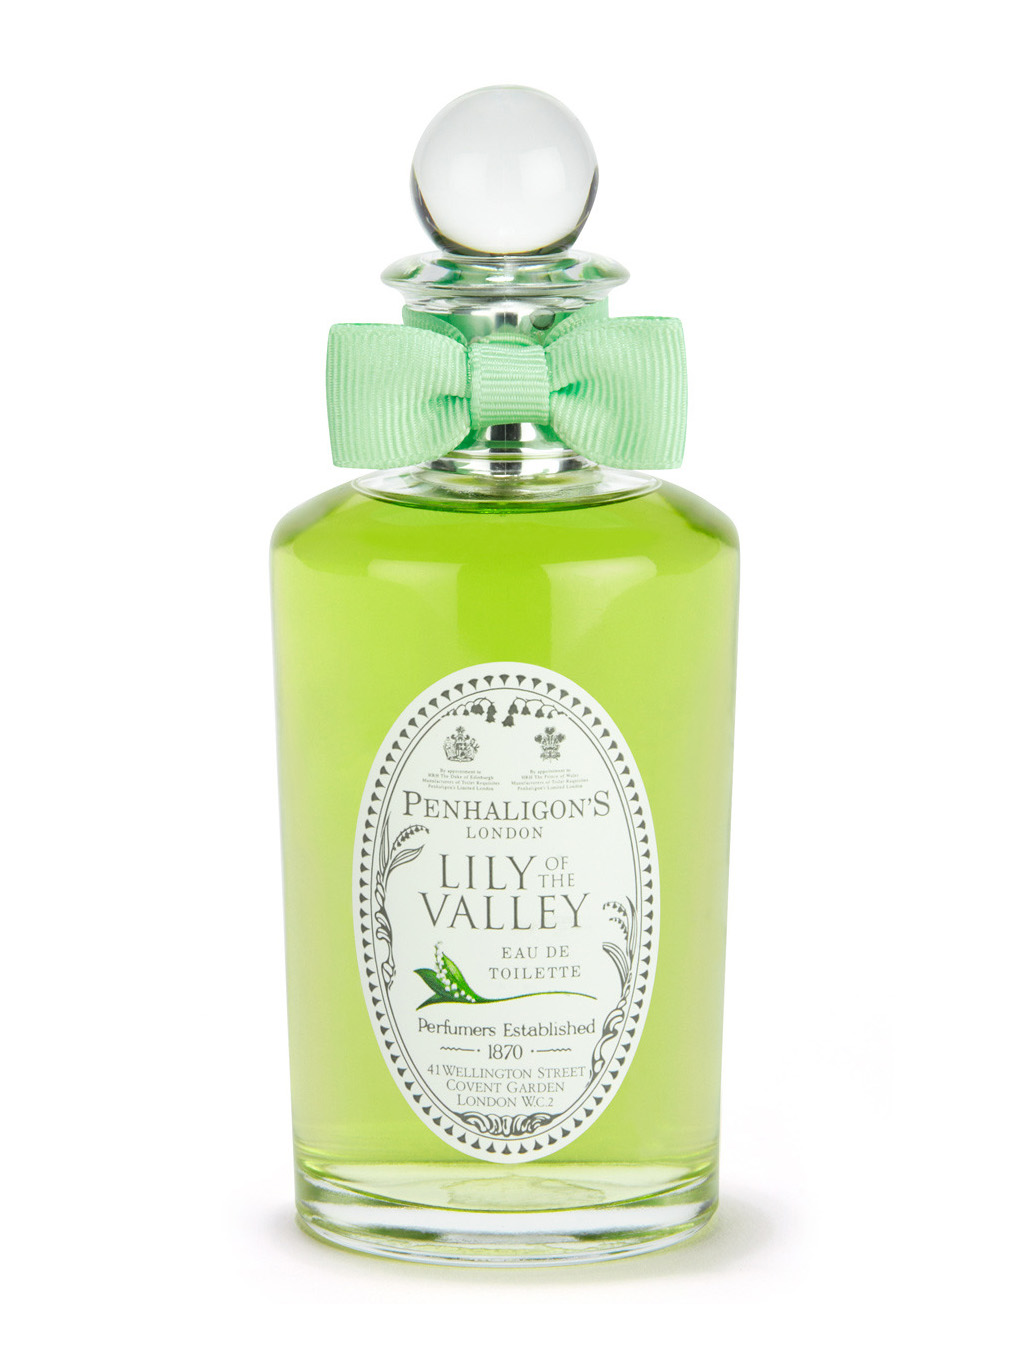 Perfumes with lily of the valley